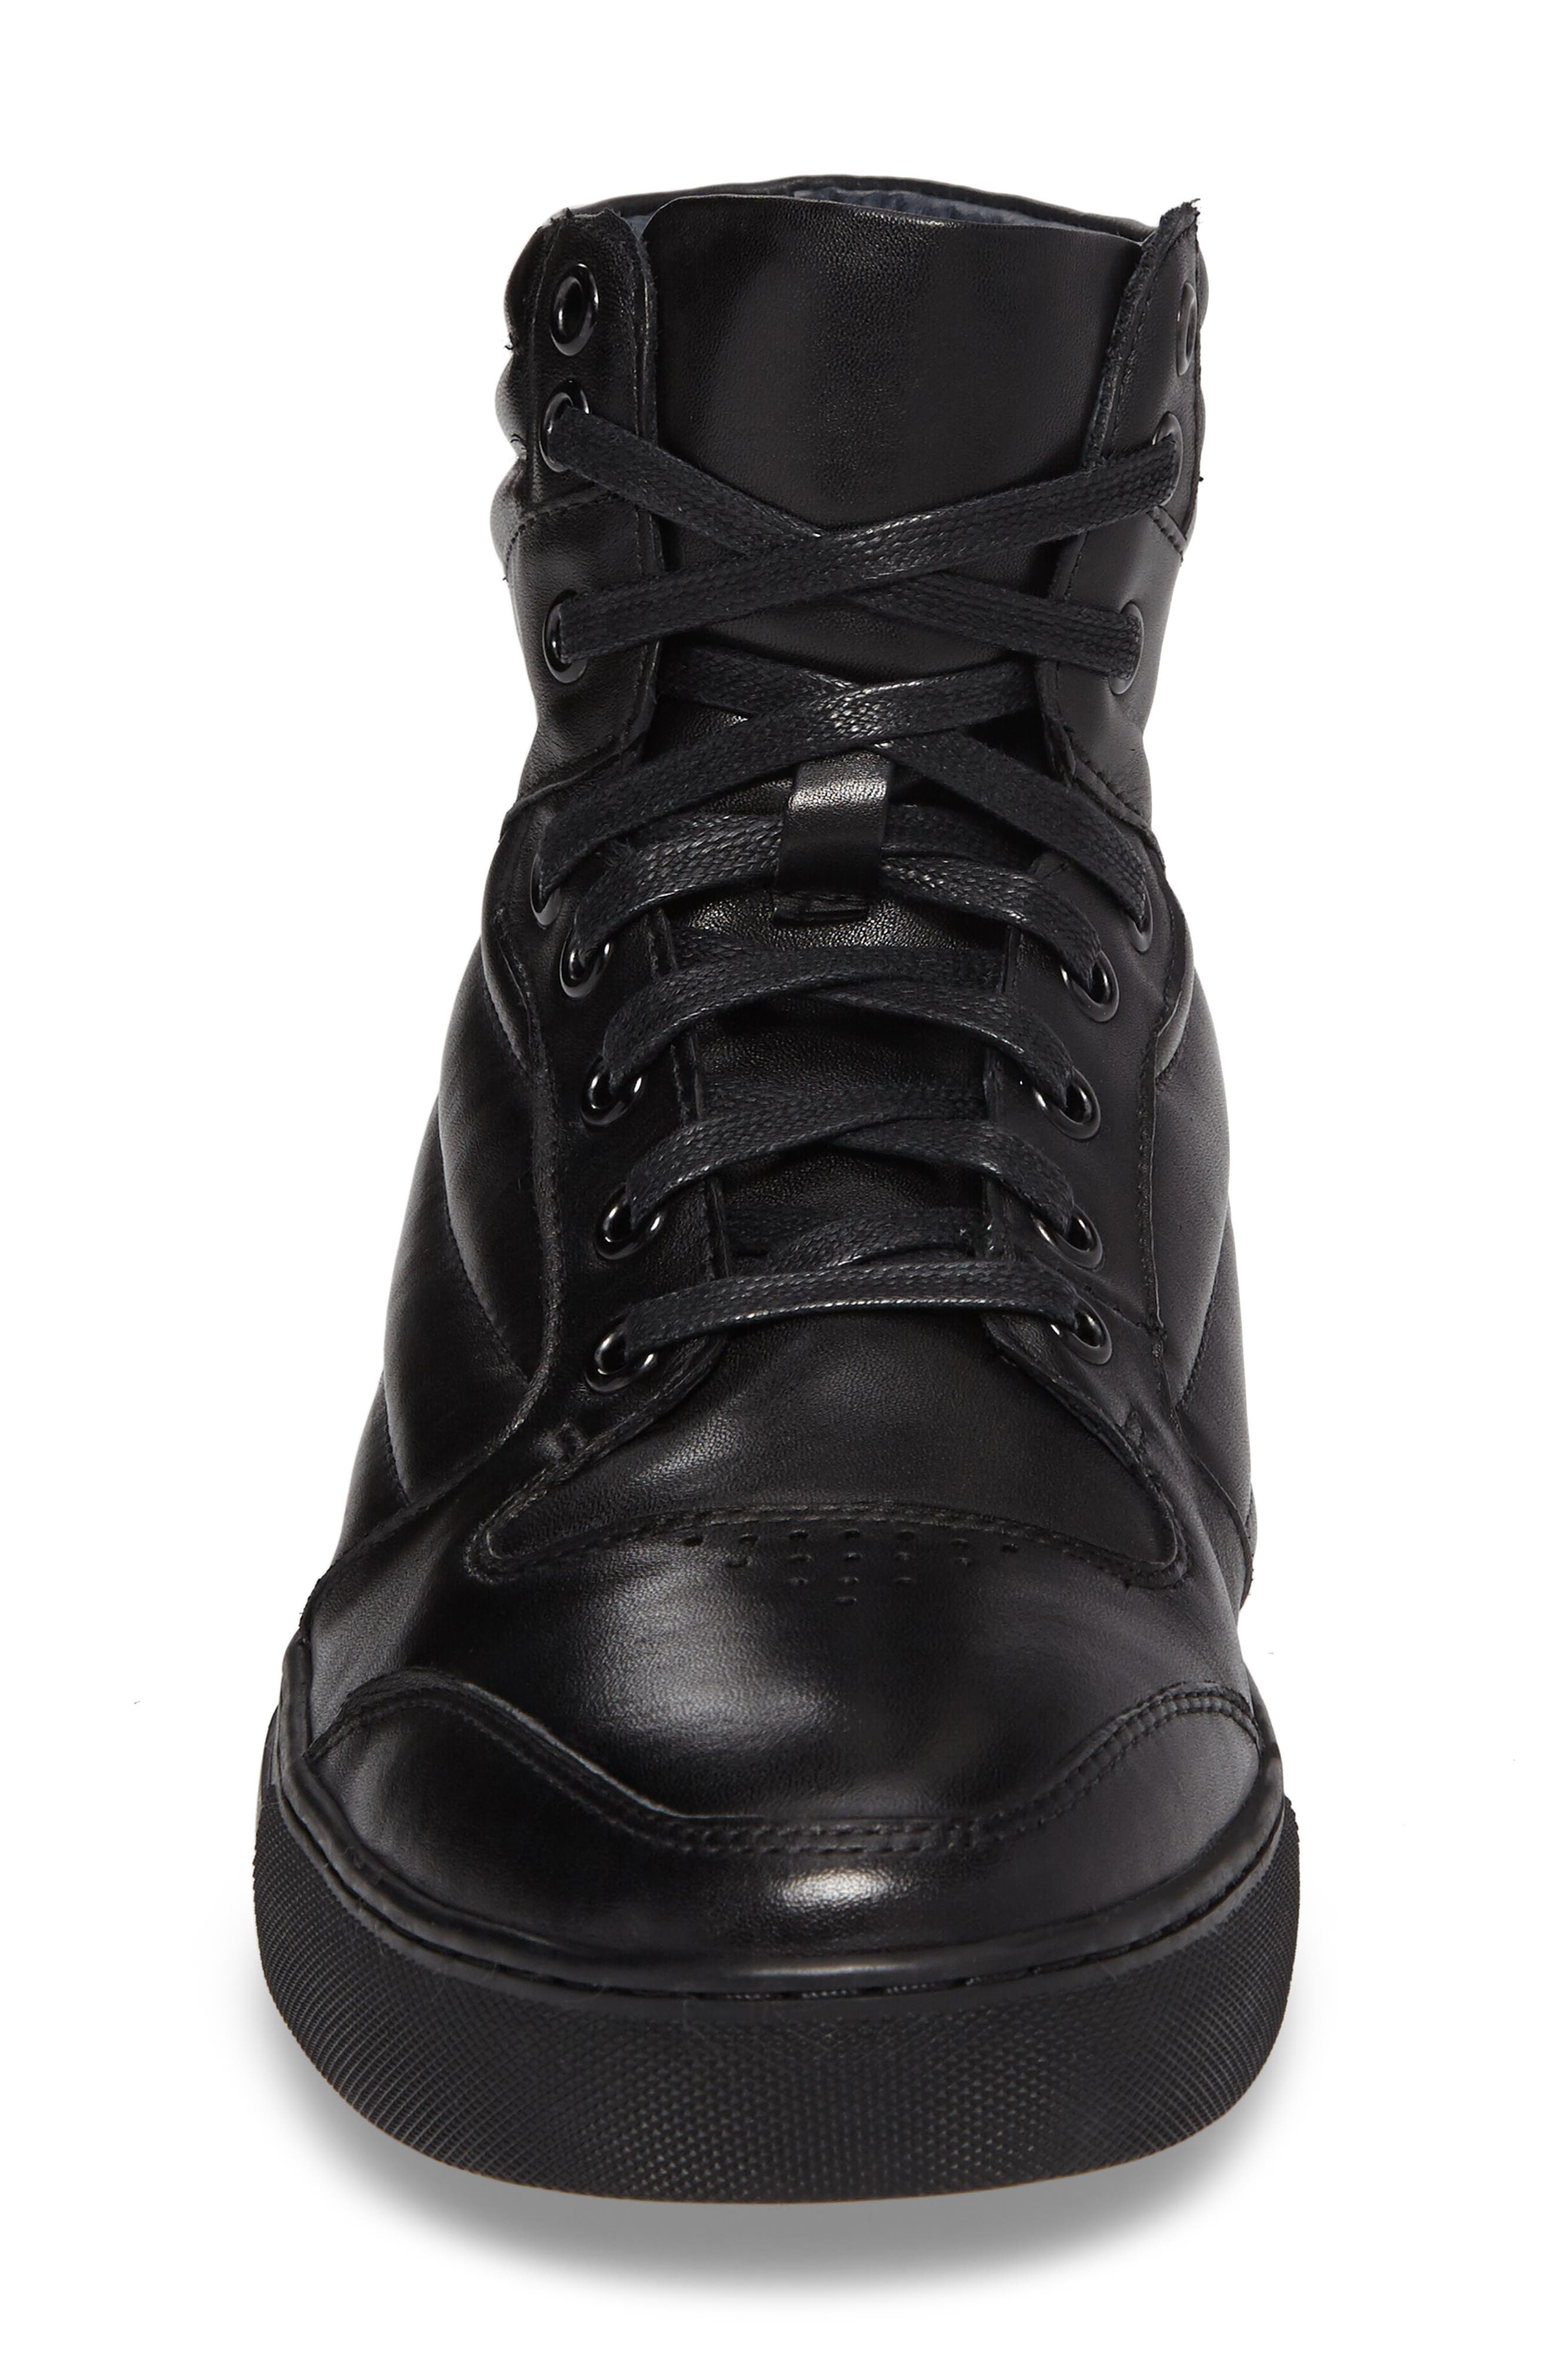 Vacdes High Top Sneaker,                             Alternate thumbnail 4, color,                             Black Leather